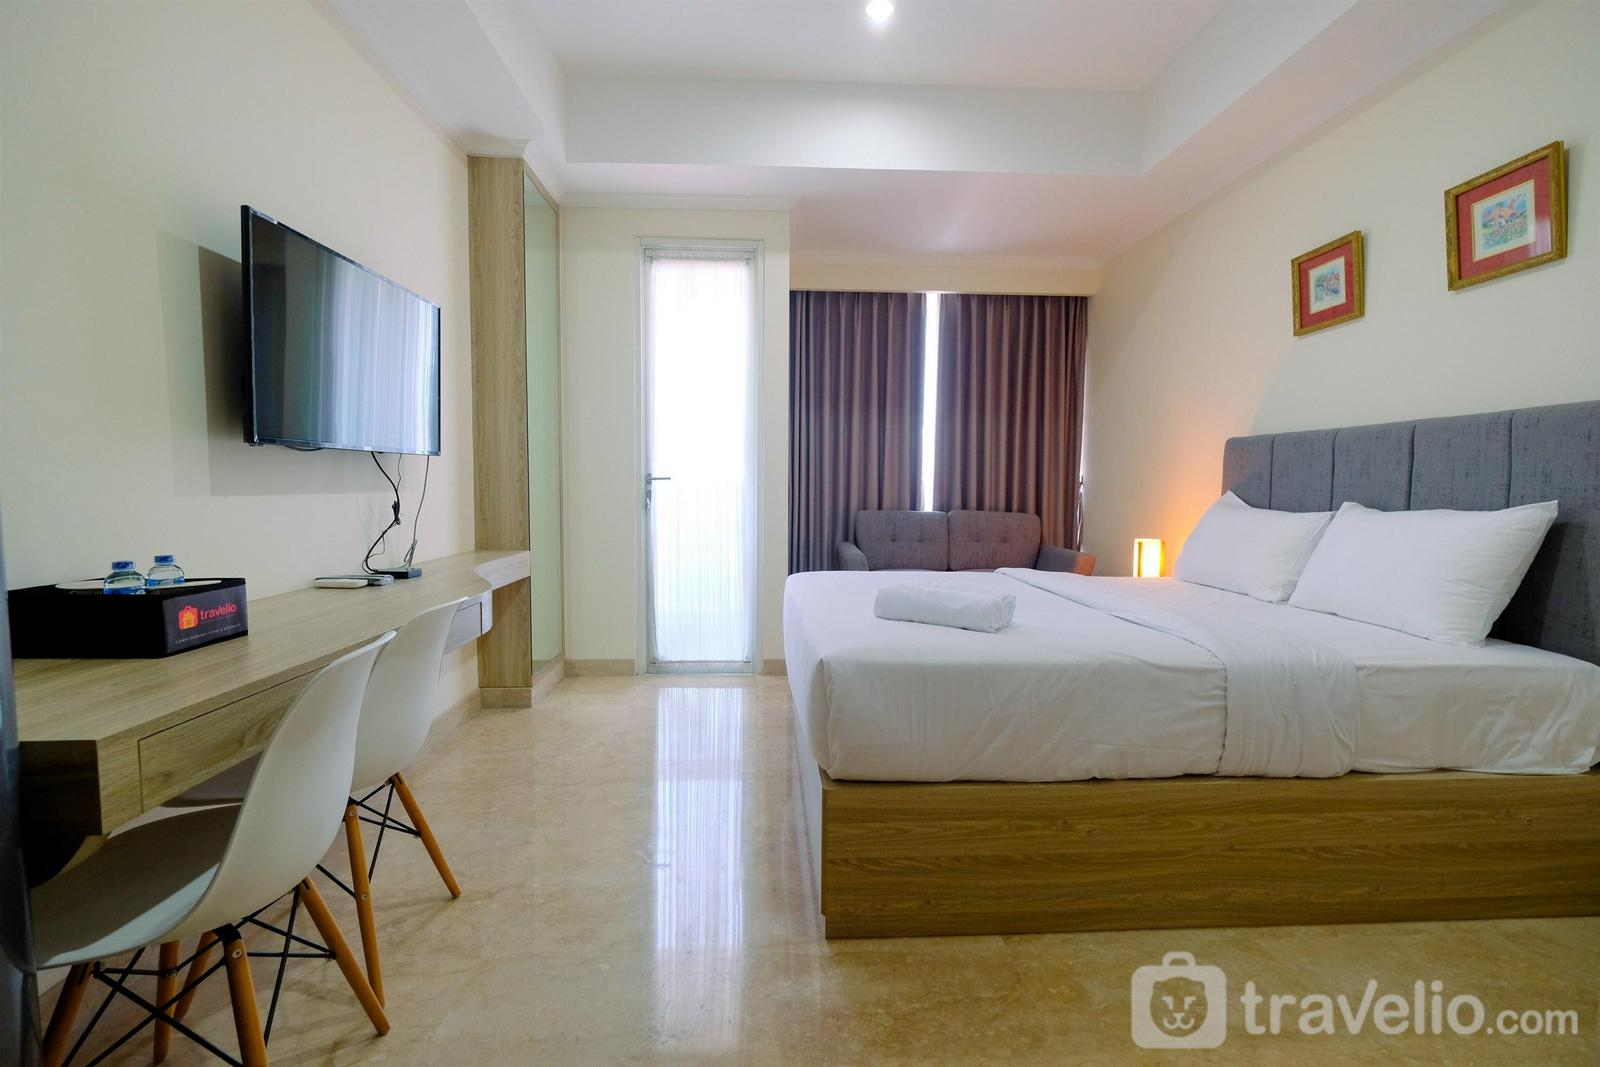 Menteng Park Apartment - Modern Studio at Menteng Park Apartment By Travelio